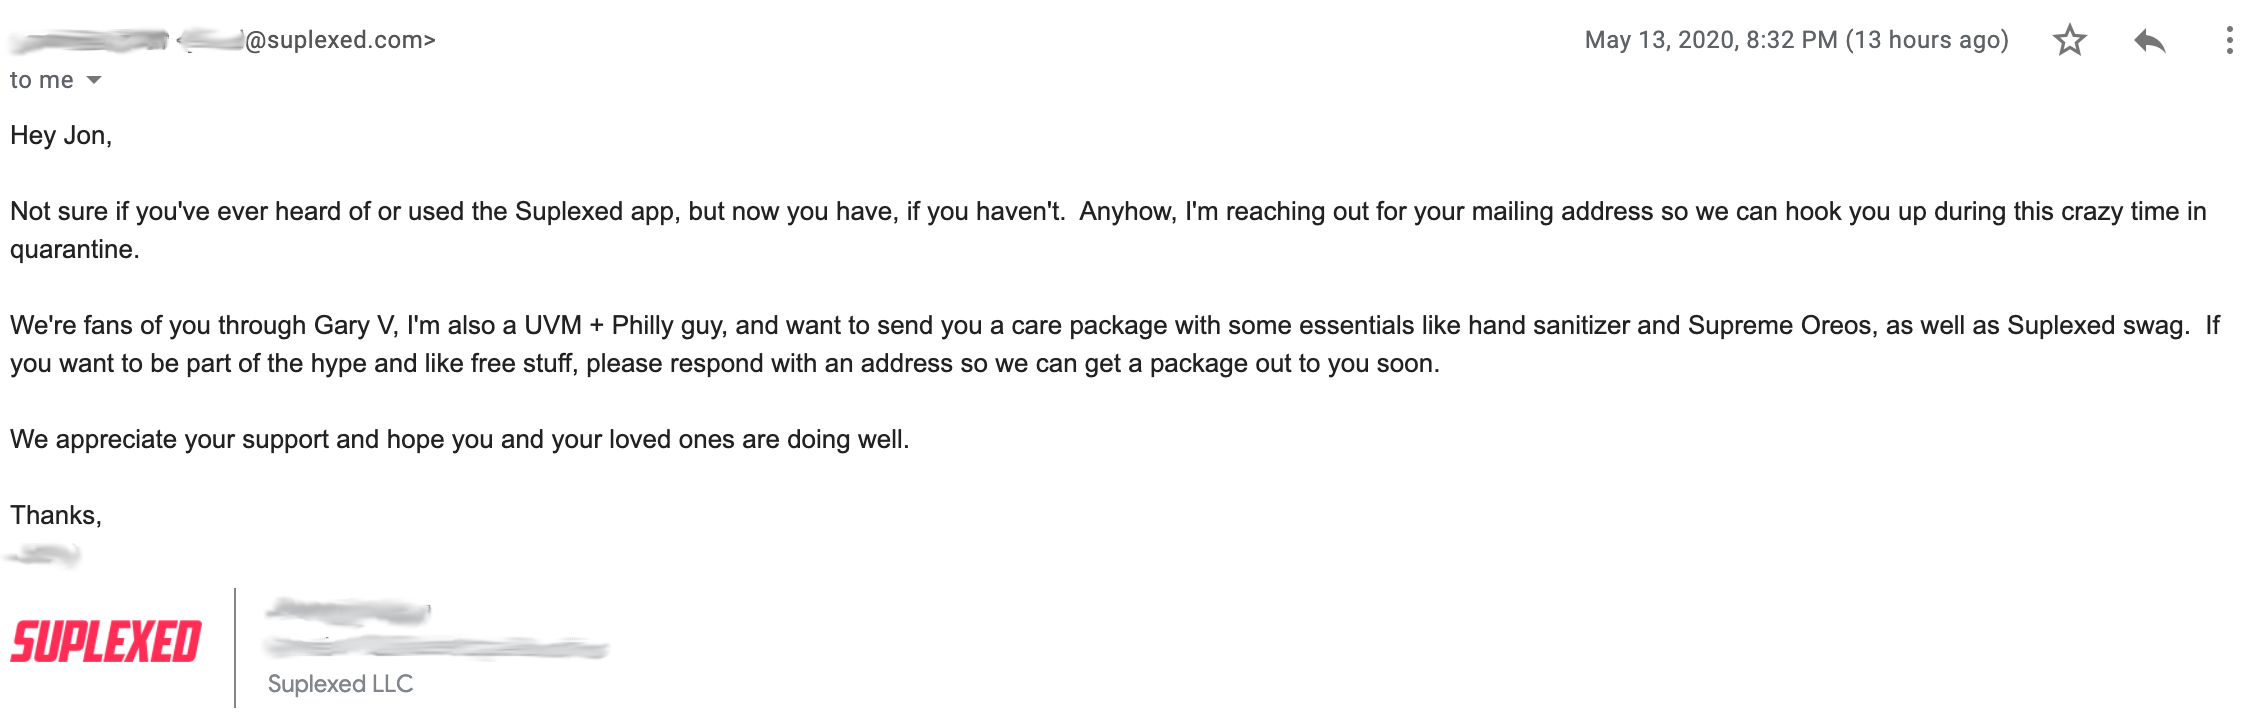 Image of the best cold e-mail I've ever received